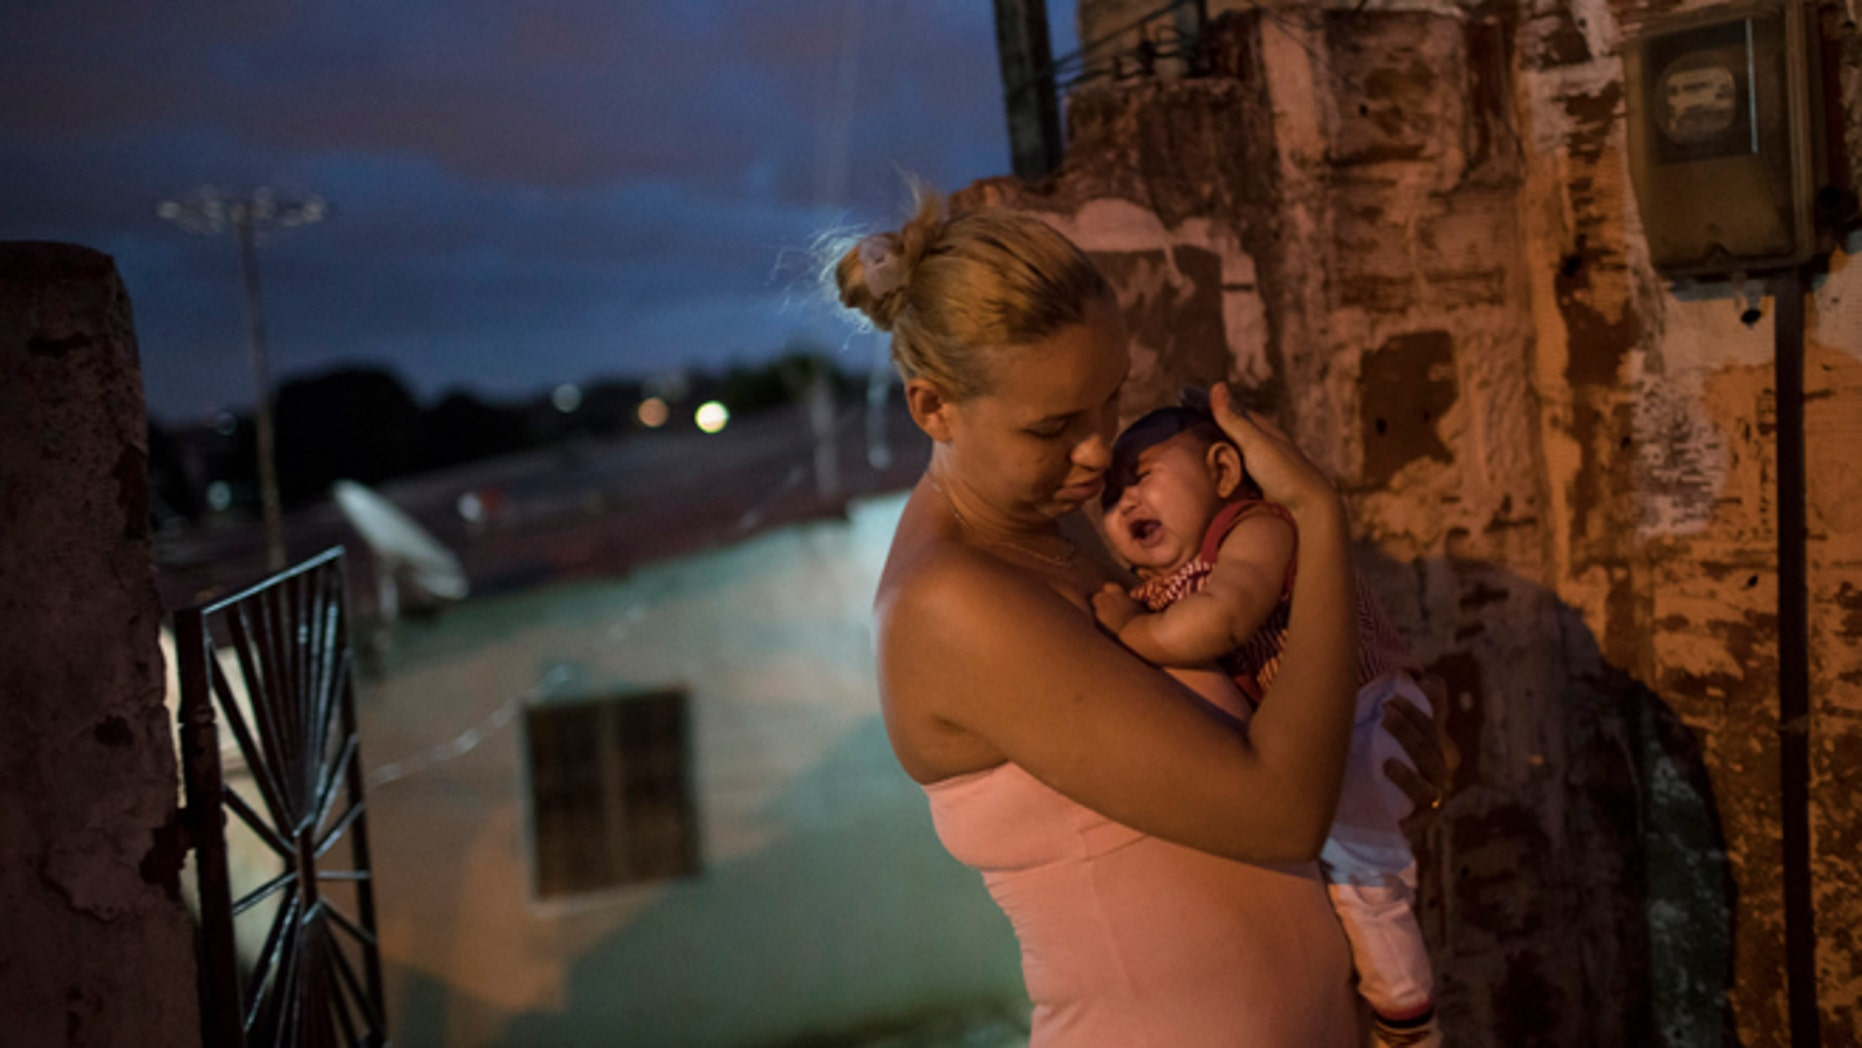 FILE - In this Wednesday, Jan. 27, 2016 file photo, Gleyse Kelly da Silva, 27, holds her daughter Maria Giovanna, who was born with microcephaly, outside their house in Recife, Pernambuco state, Brazil. Women who got pregnant during a Zika outbreak in Tahiti two years ago had about a 1 percent chance of having a baby with an abnormally small head, according to a new study published Tuesday, March 15. It's a surprisingly low risk that experts say might not match the threat of the epidemic now spreading explosively in the Americas.  The World Health Organization declared Zika to be a global emergency last month, based on suspicions it is causing a spike in a worrying birth defect known as microcephaly as well as a rare condition that sometimes results in temporary paralysis.  (AP Photo/Felipe Dana, file)